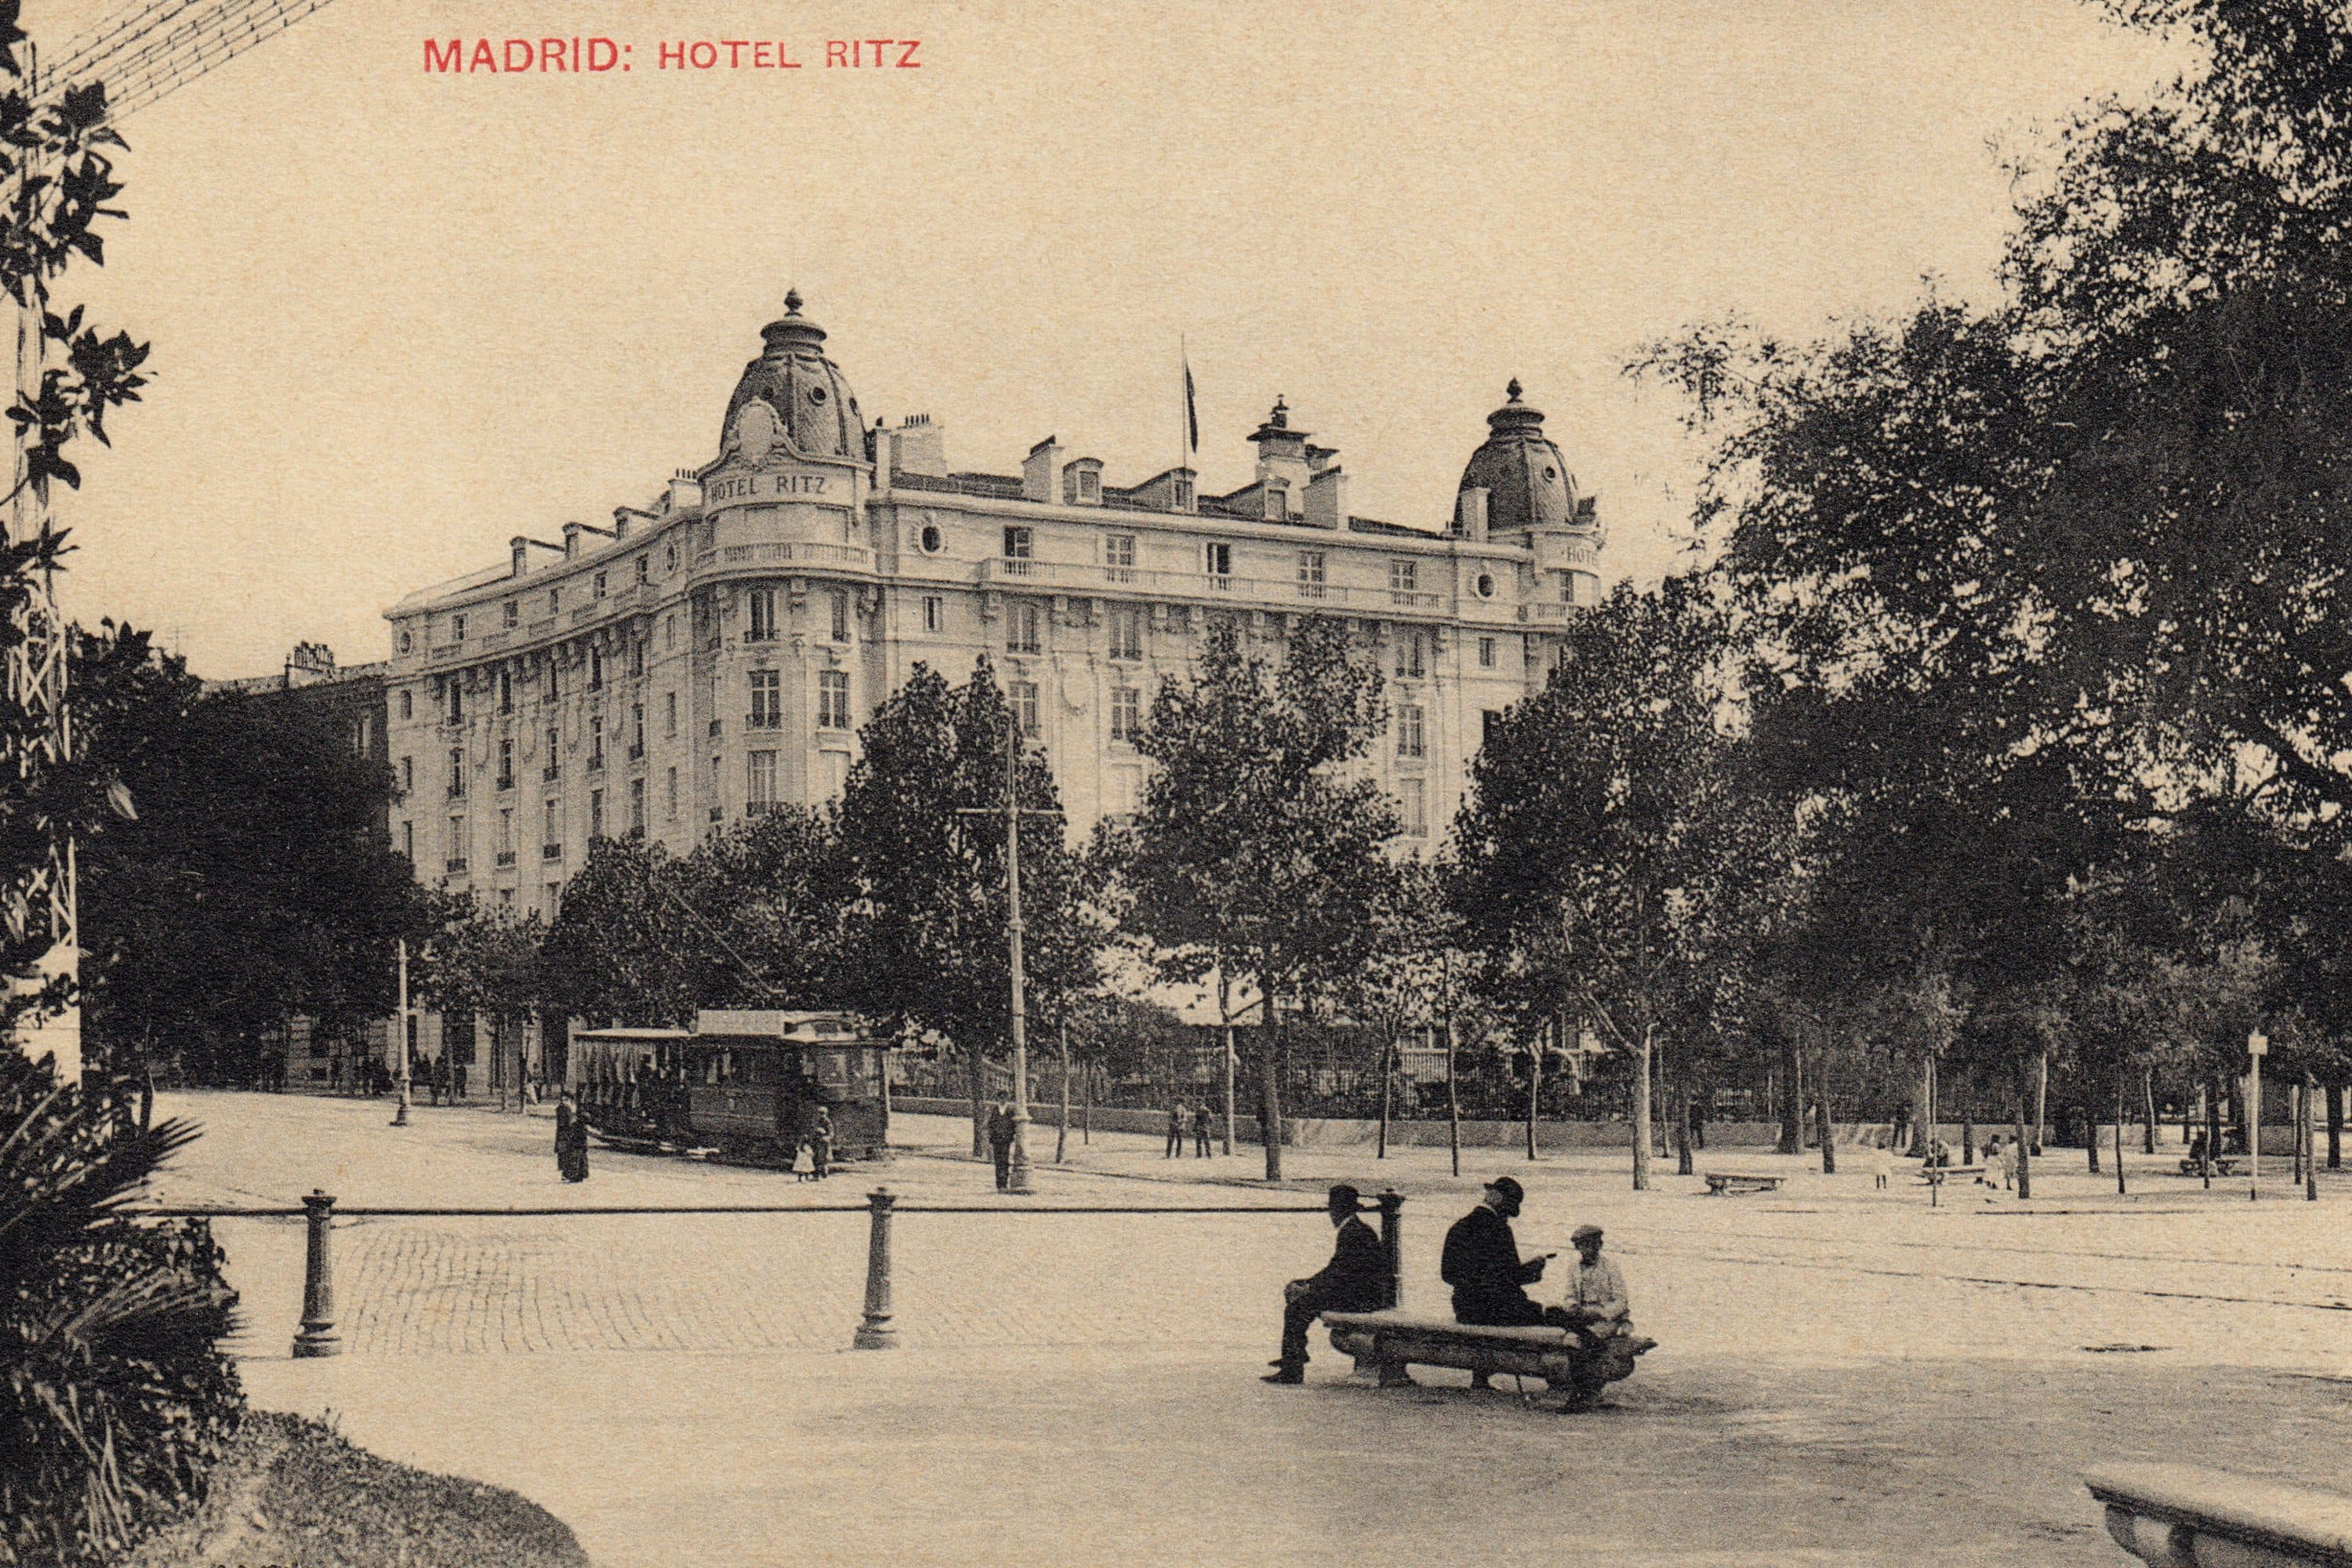 Historical photo of The Ritz hotel